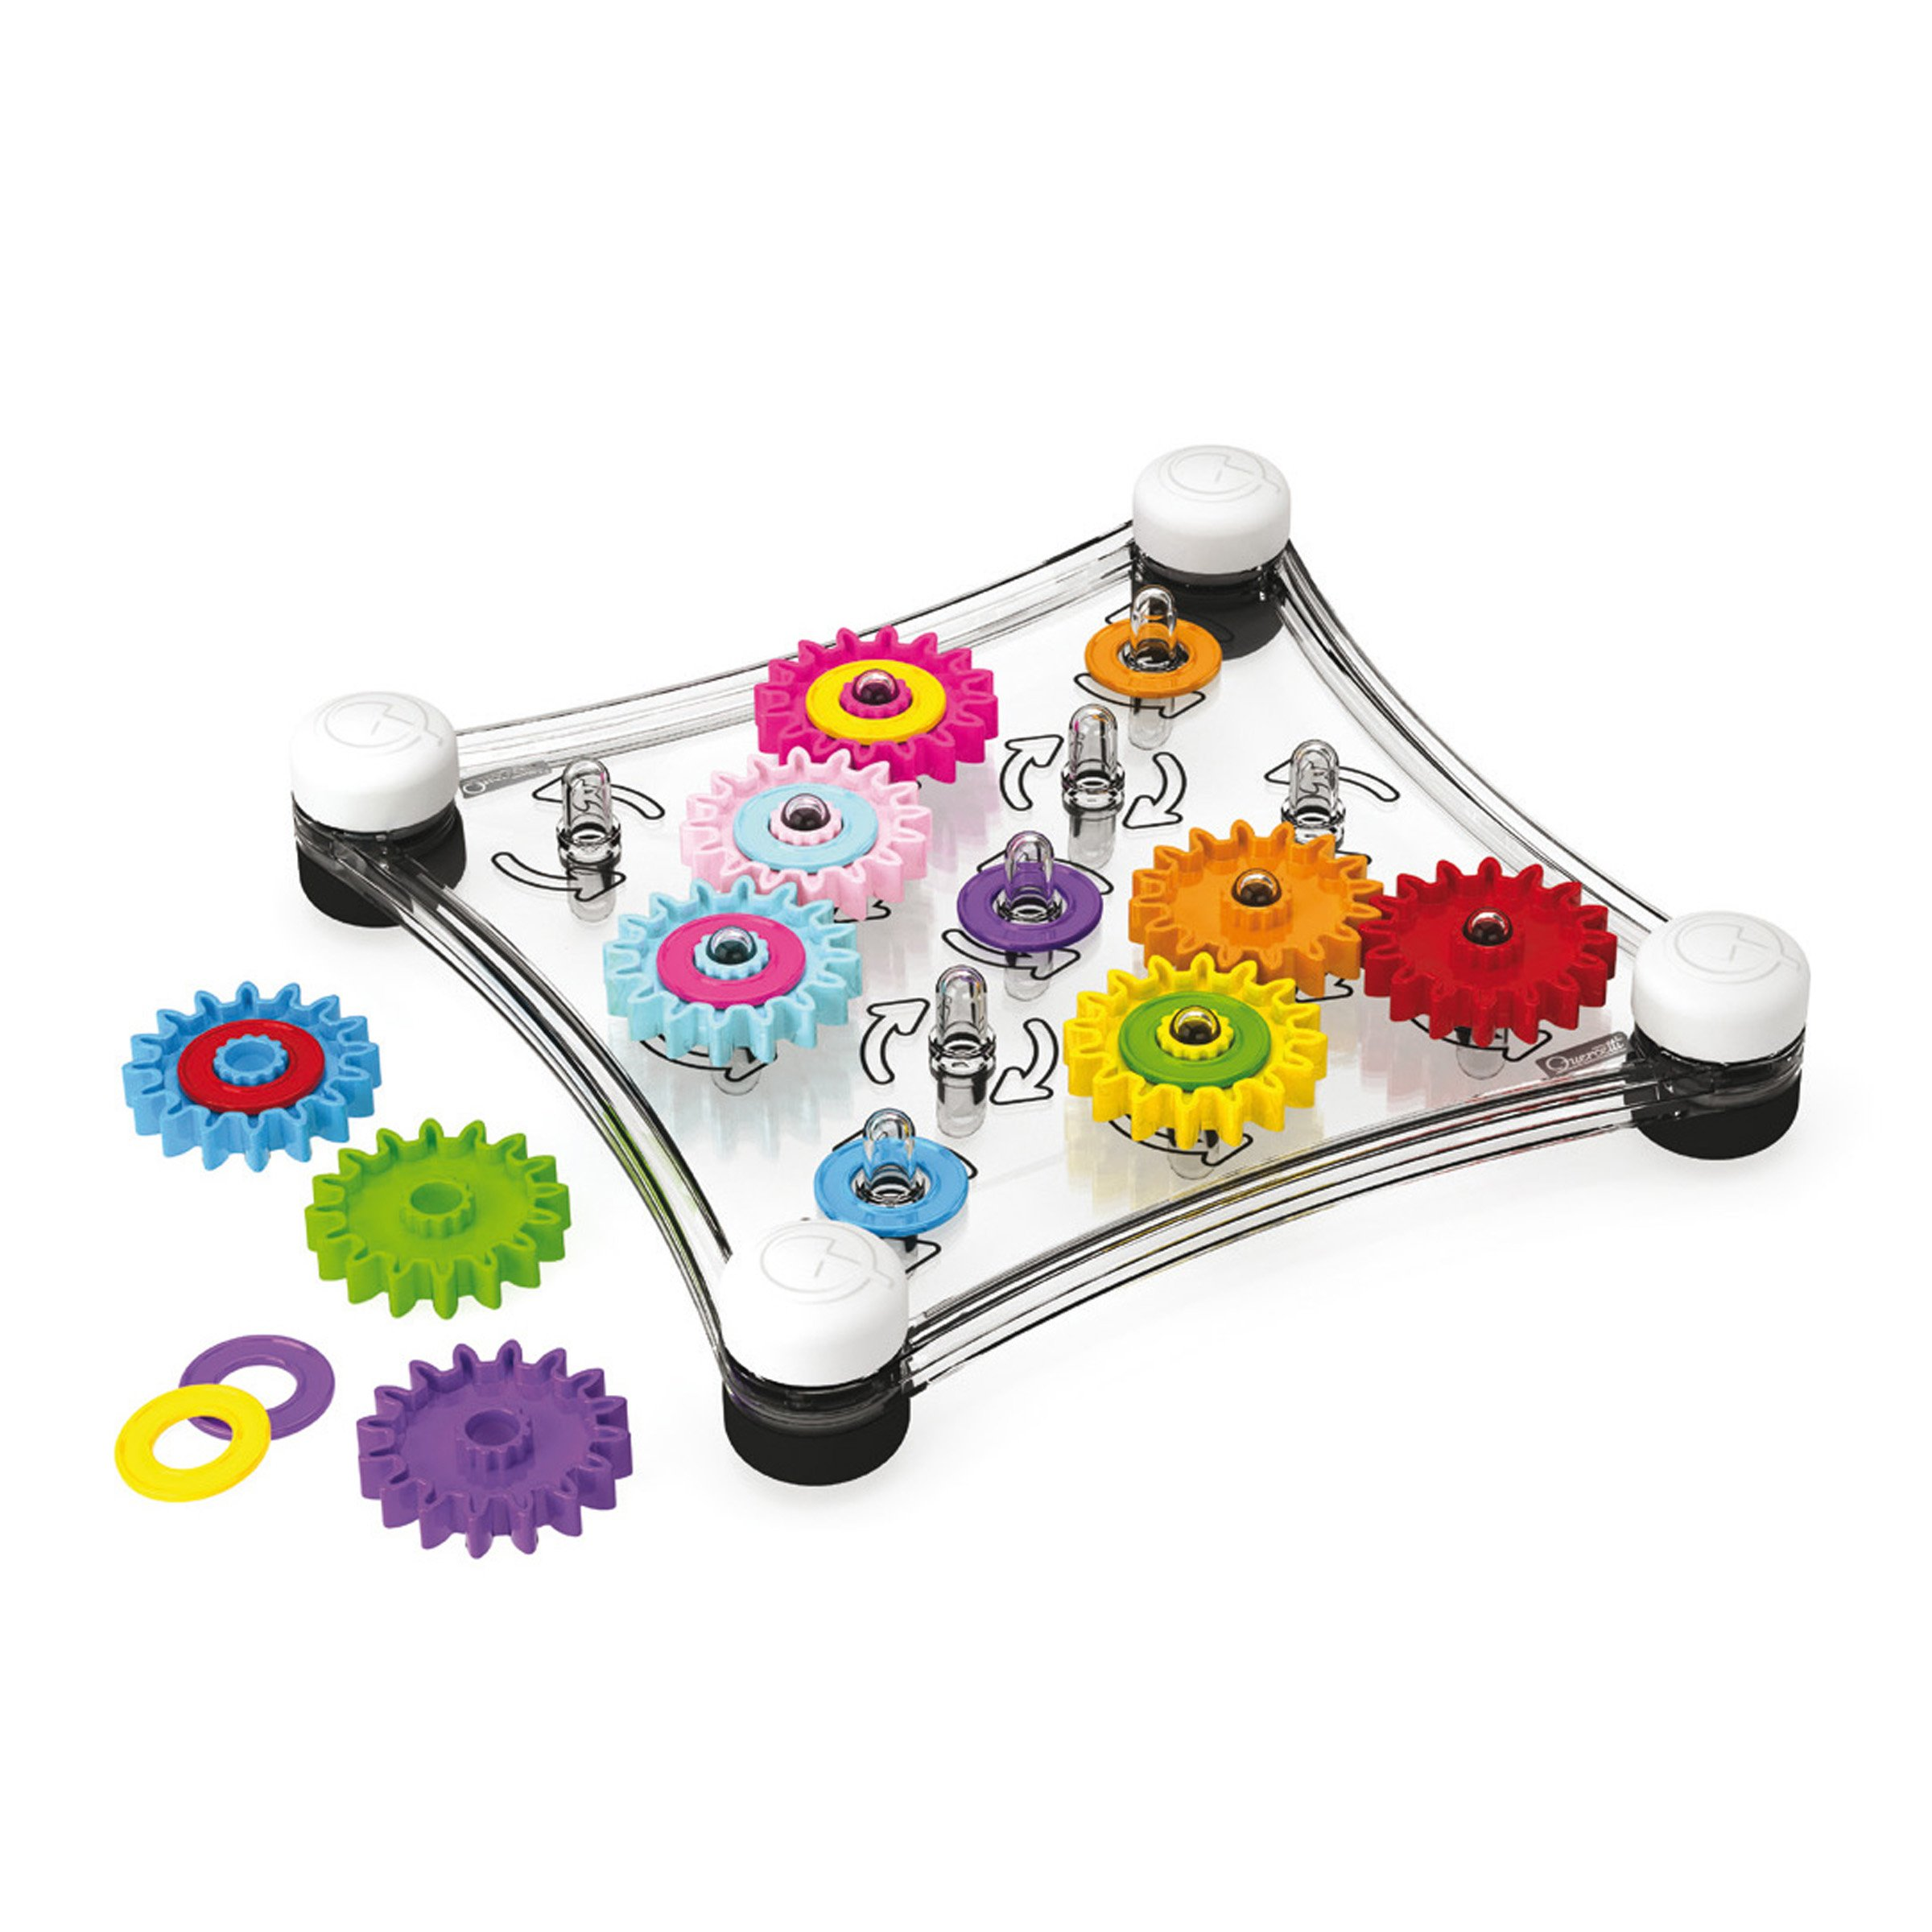 Quercetti Georello Junior - Double Sided Spinning Gear Play Set by Quercetti (Image #4)